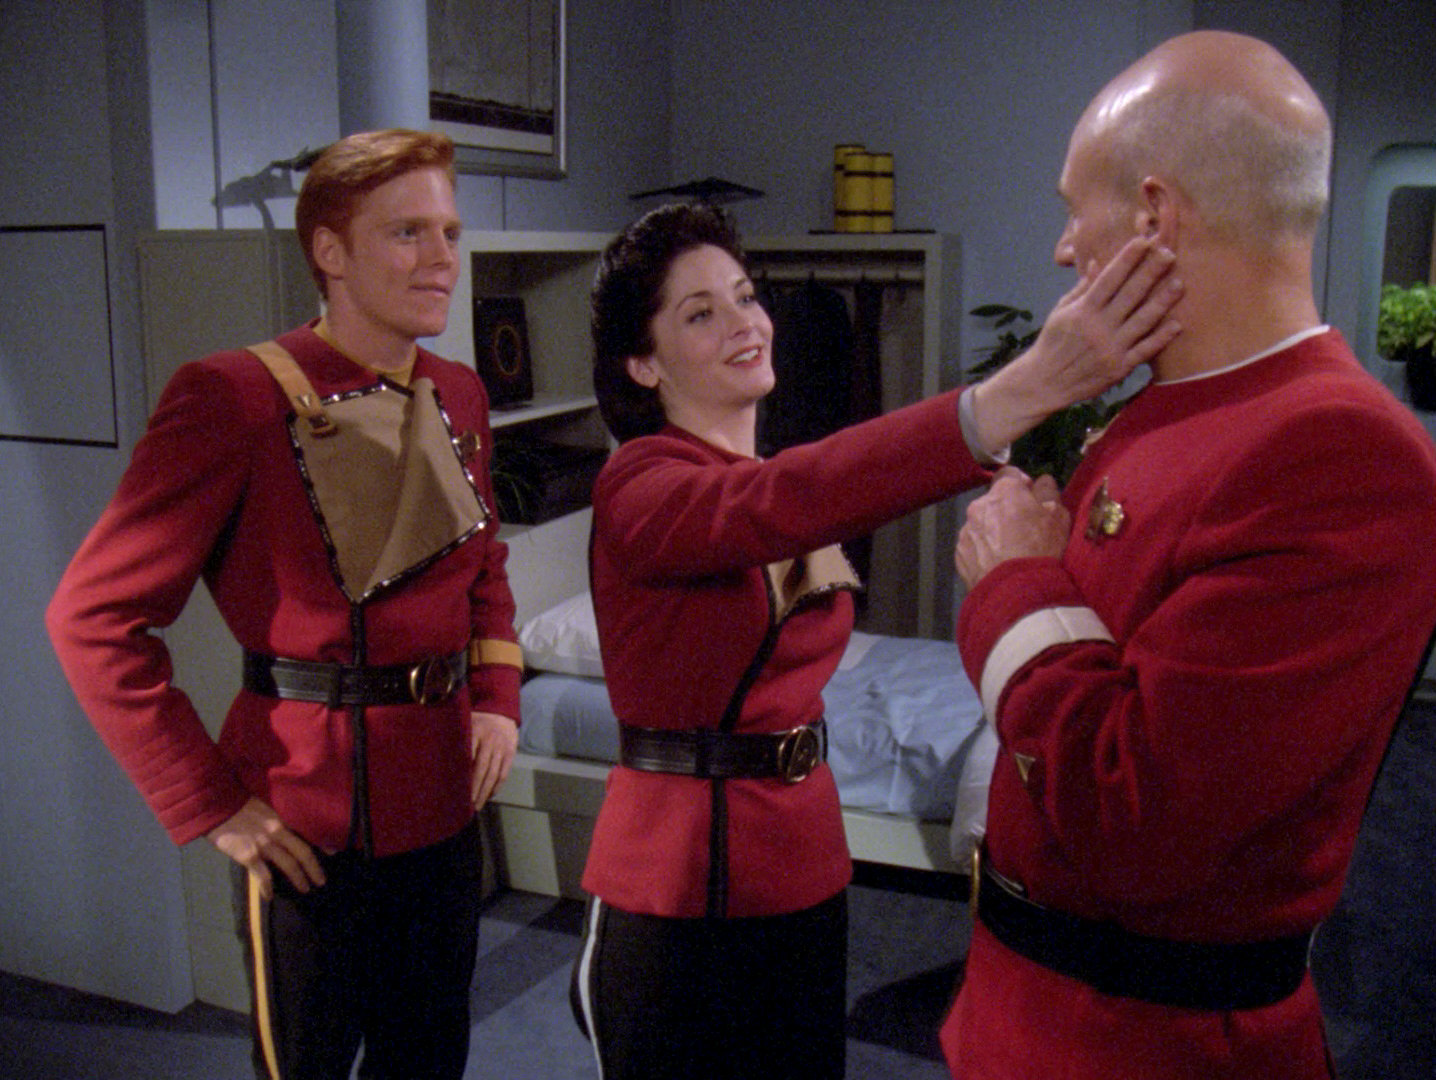 Star Trek Poll Says TNG Character Who'd Make A Great Captain Is...